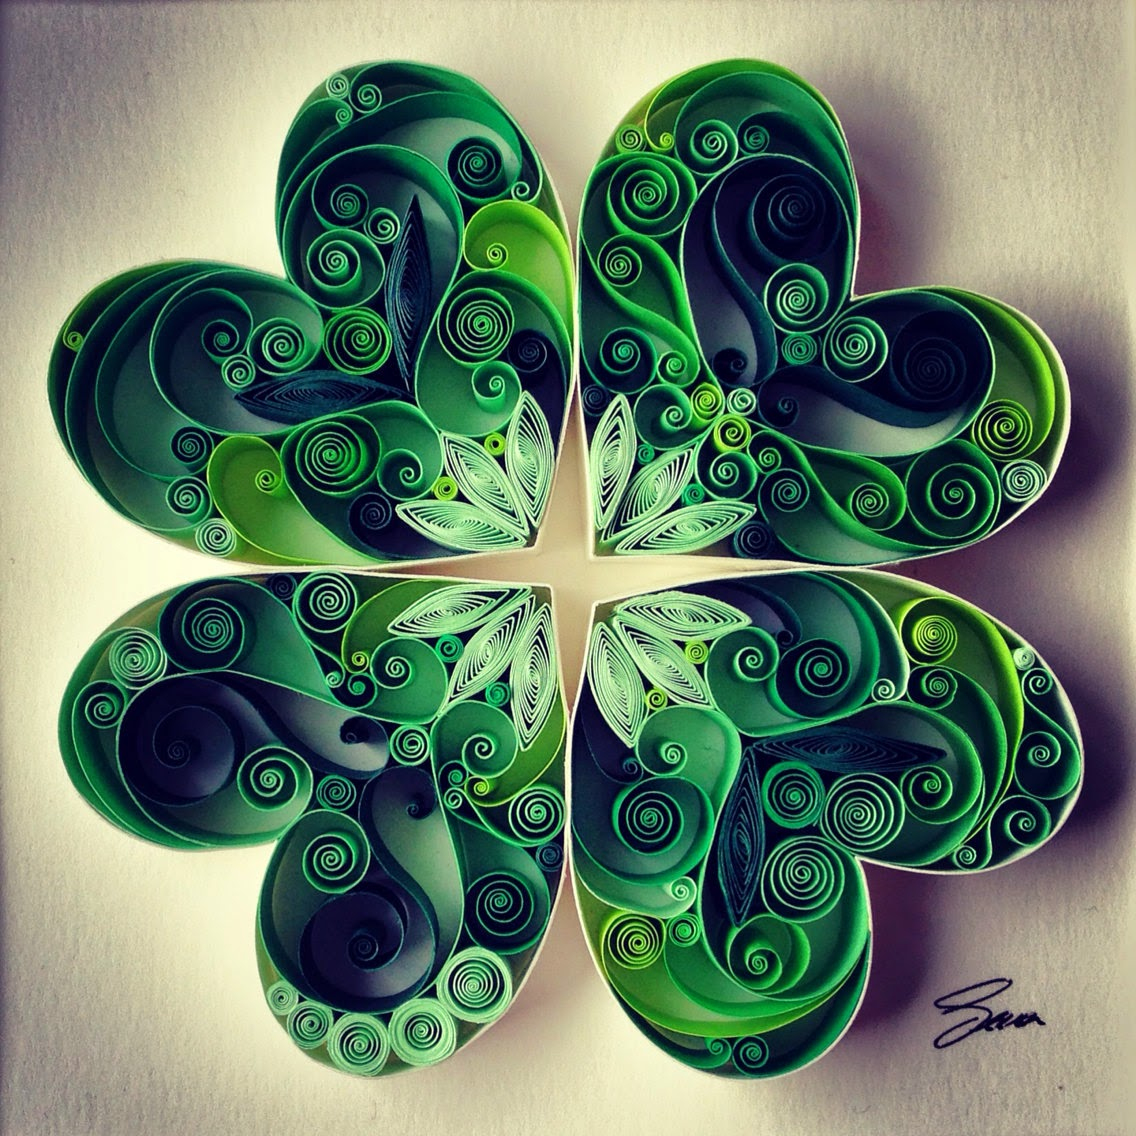 24-Good-Luck-Sena-Runa-Drawing-and-Quilling-a-match-made-in-Heaven-www-designstack-co